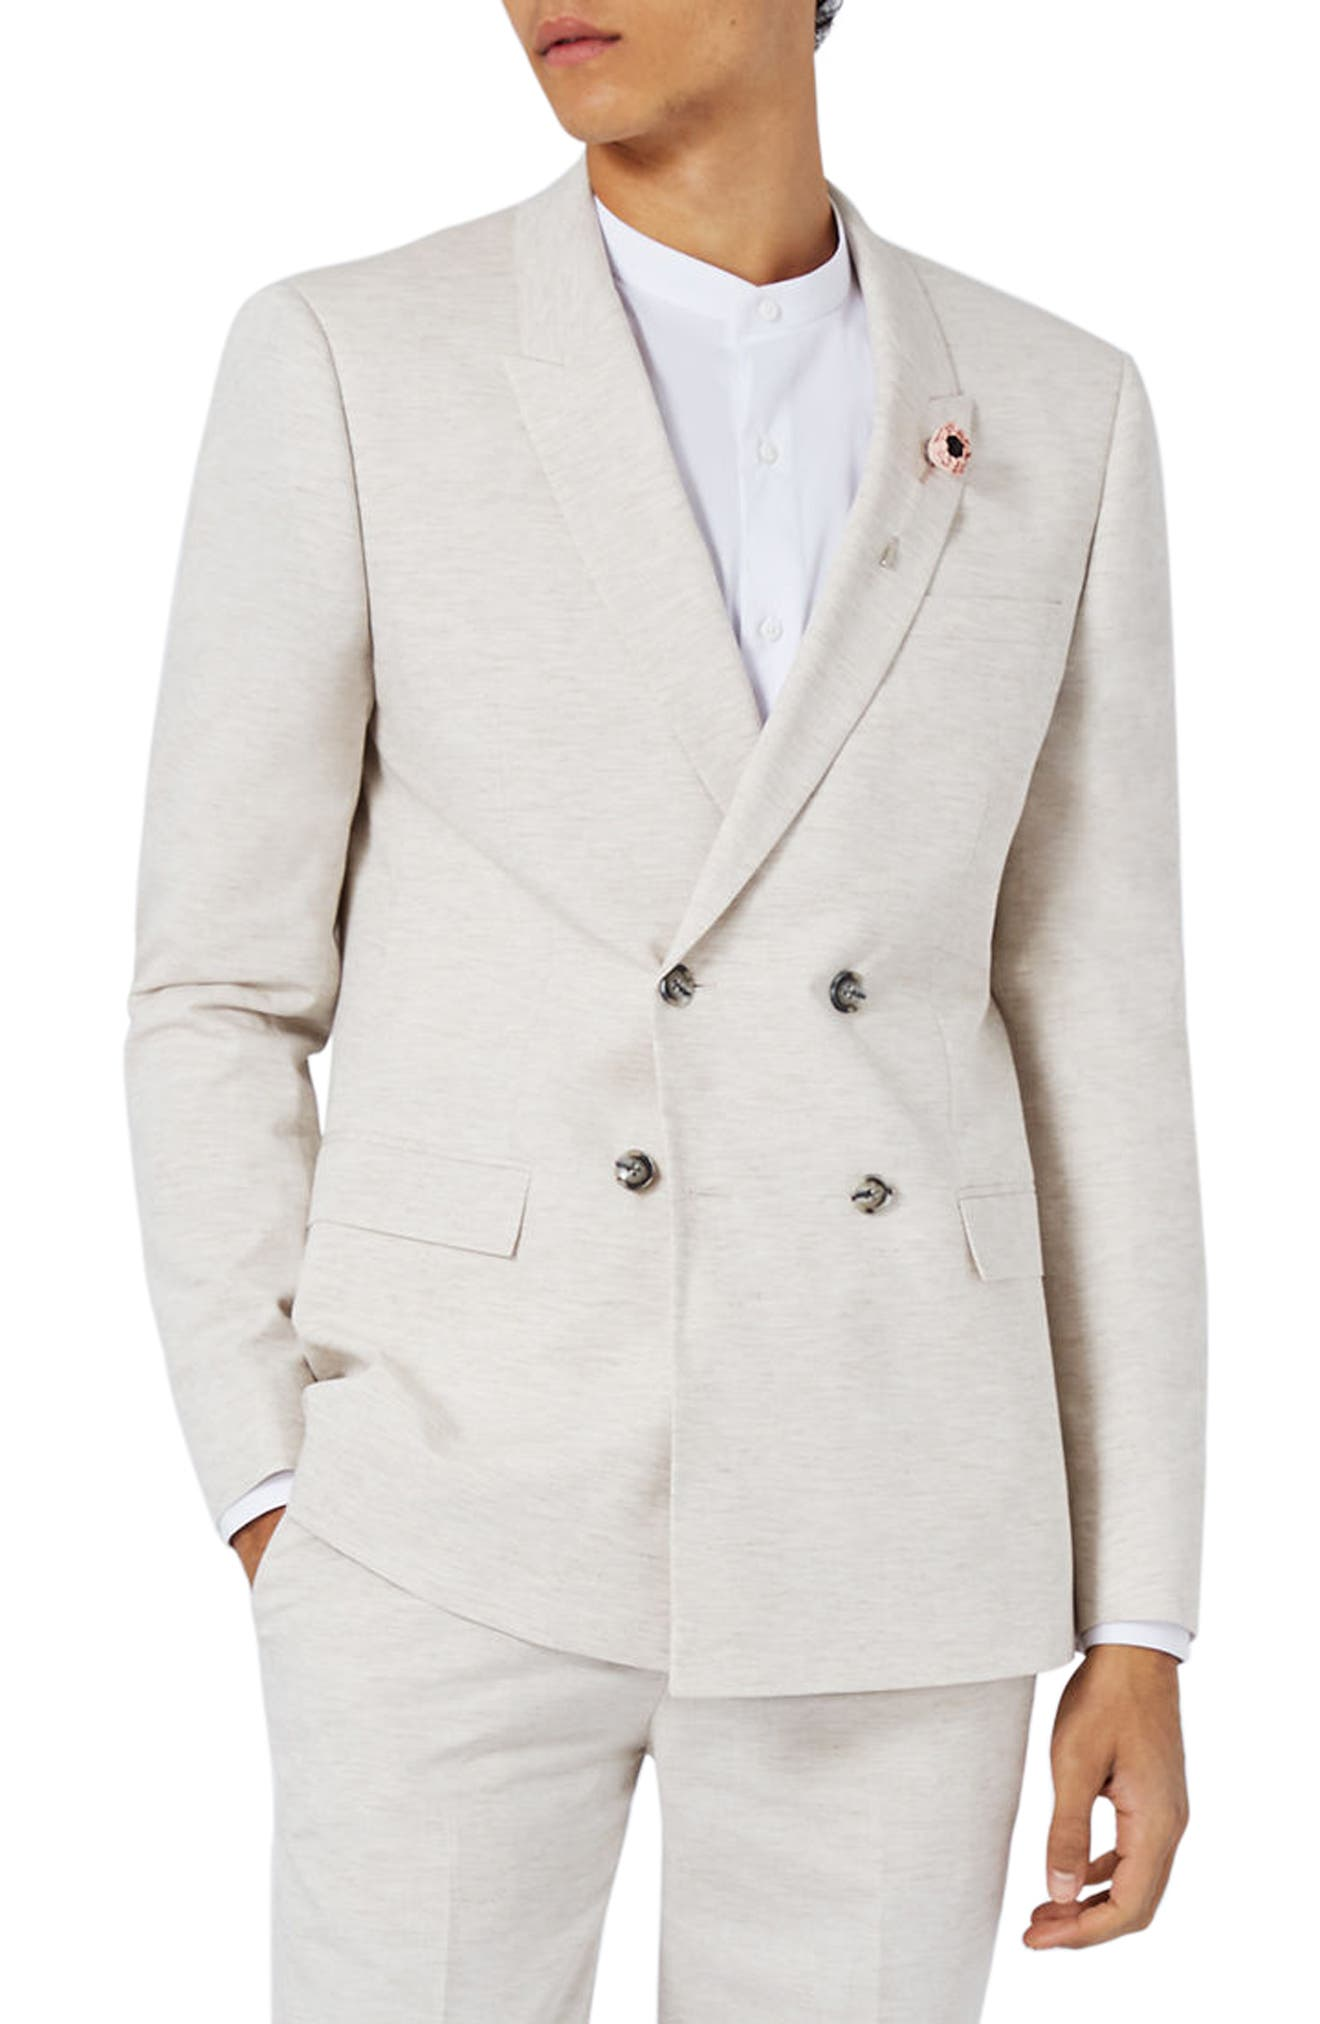 Main Image - Topman Skinny Fit Double Breasted Marled Suit Jacket